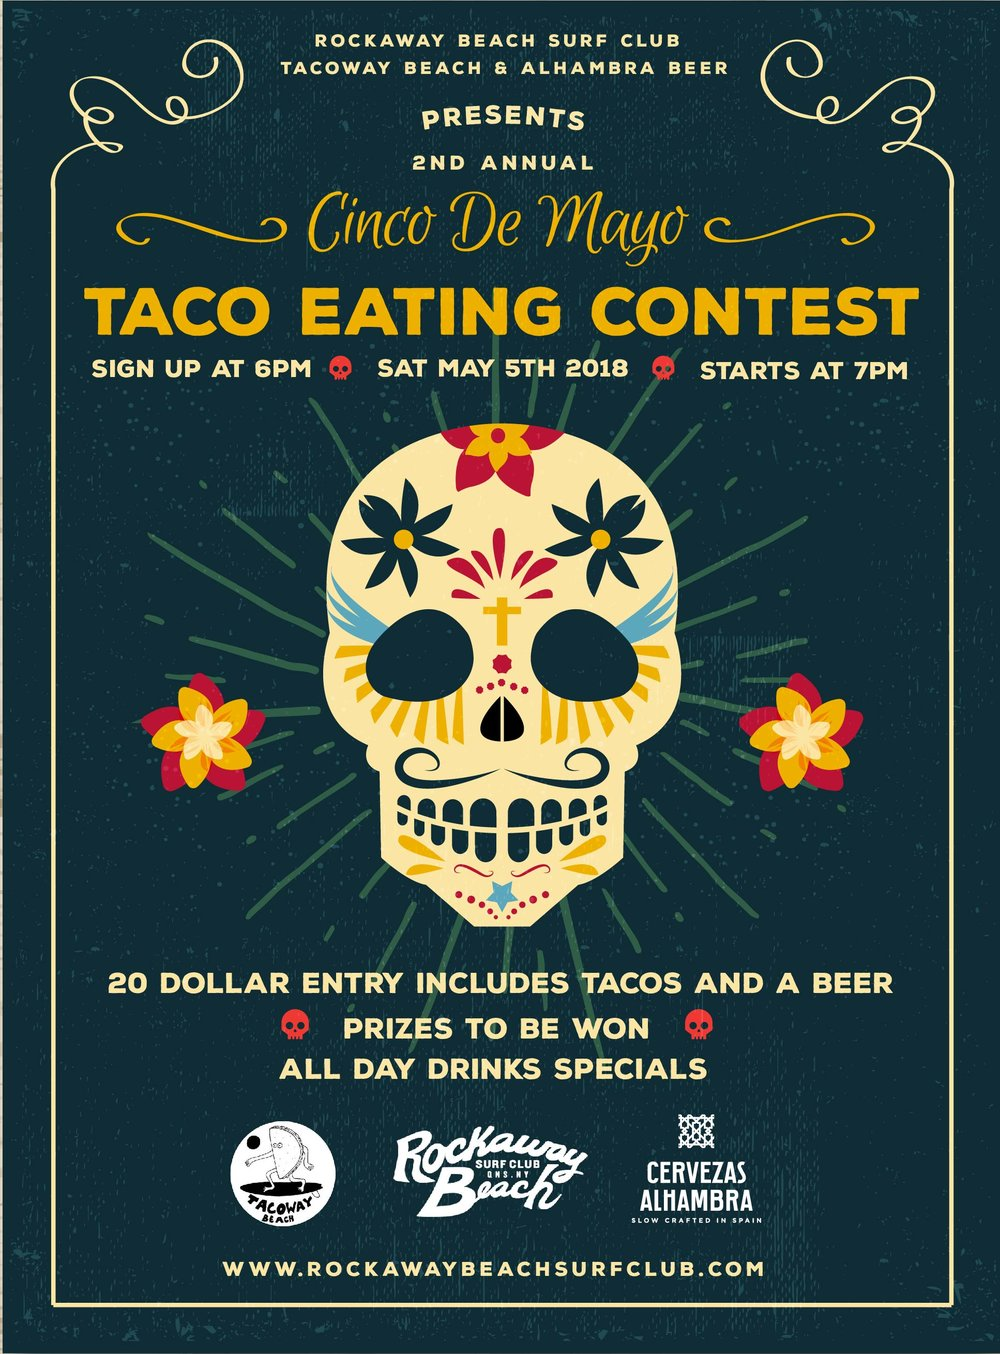 rockaway beach surf club tacoway beach taco eating contest